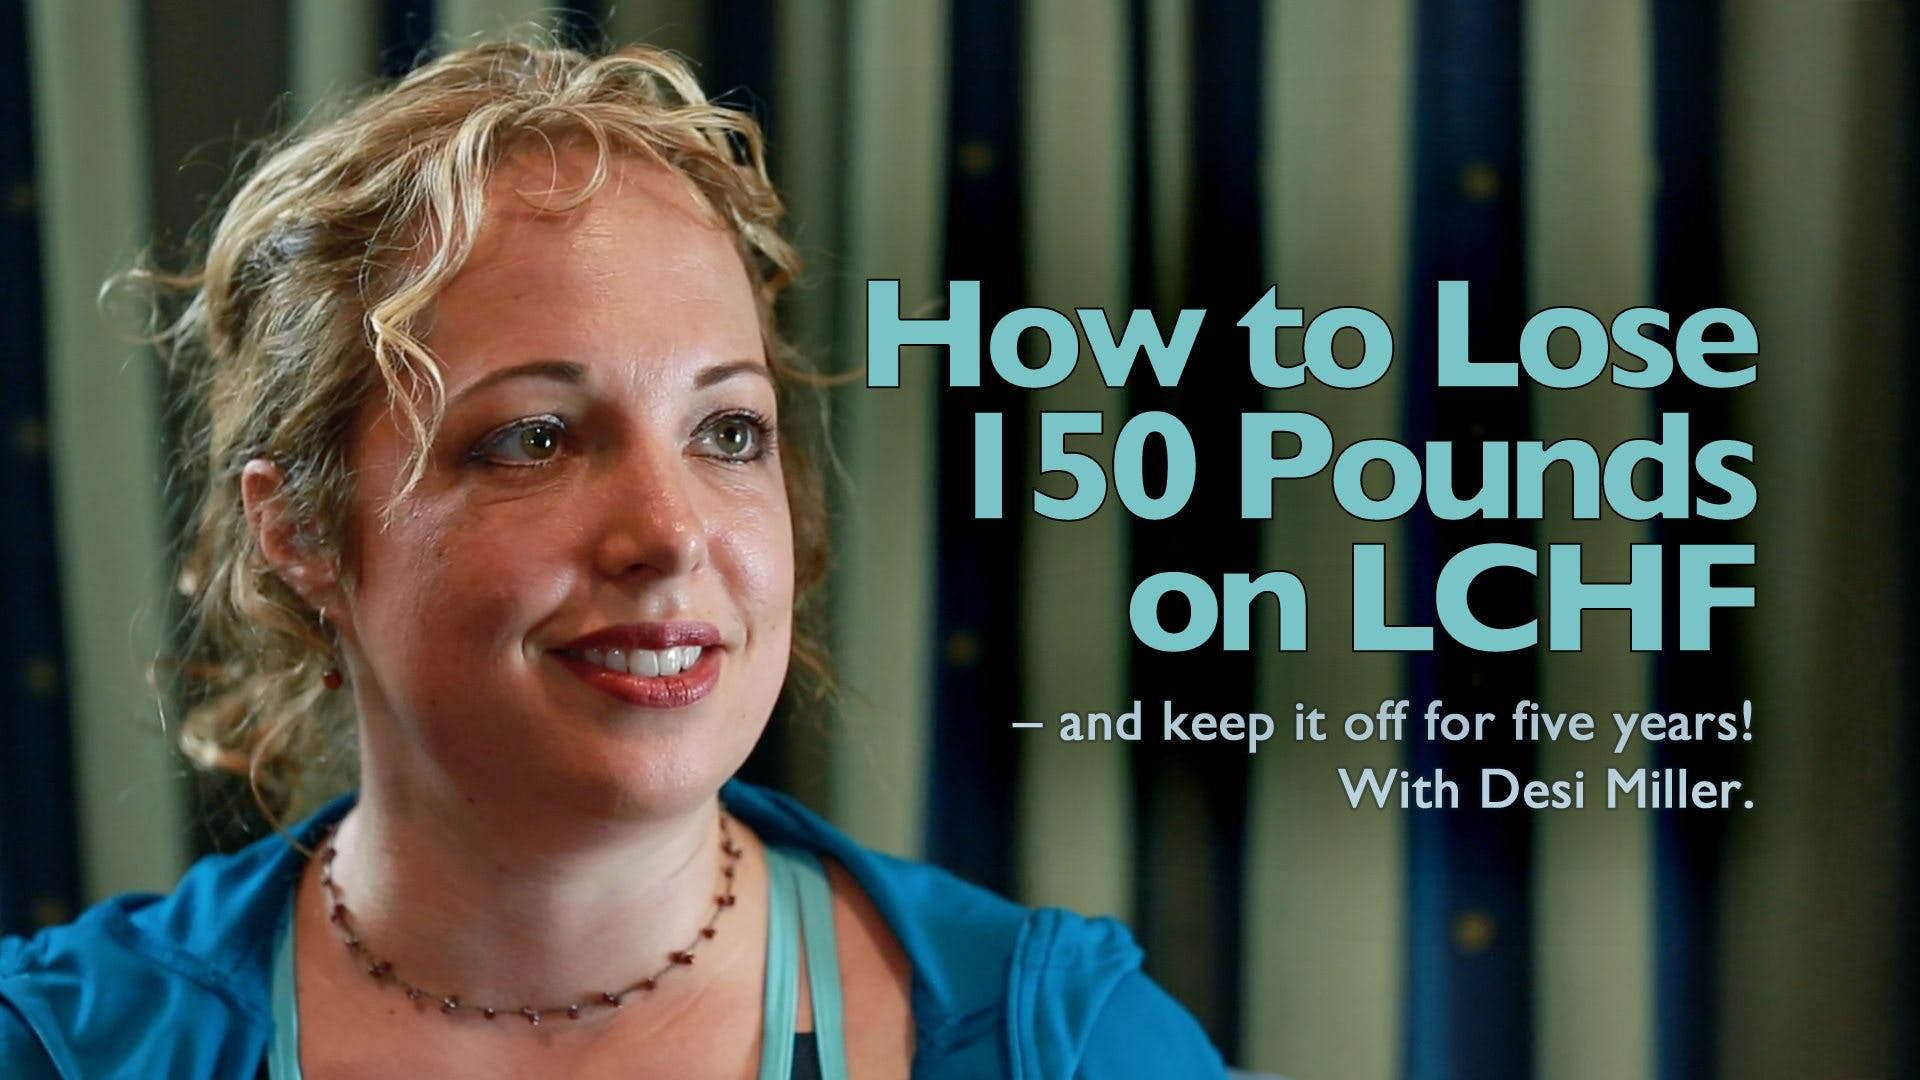 How to lose 150 pounds on low carb – and keep it off for five years!